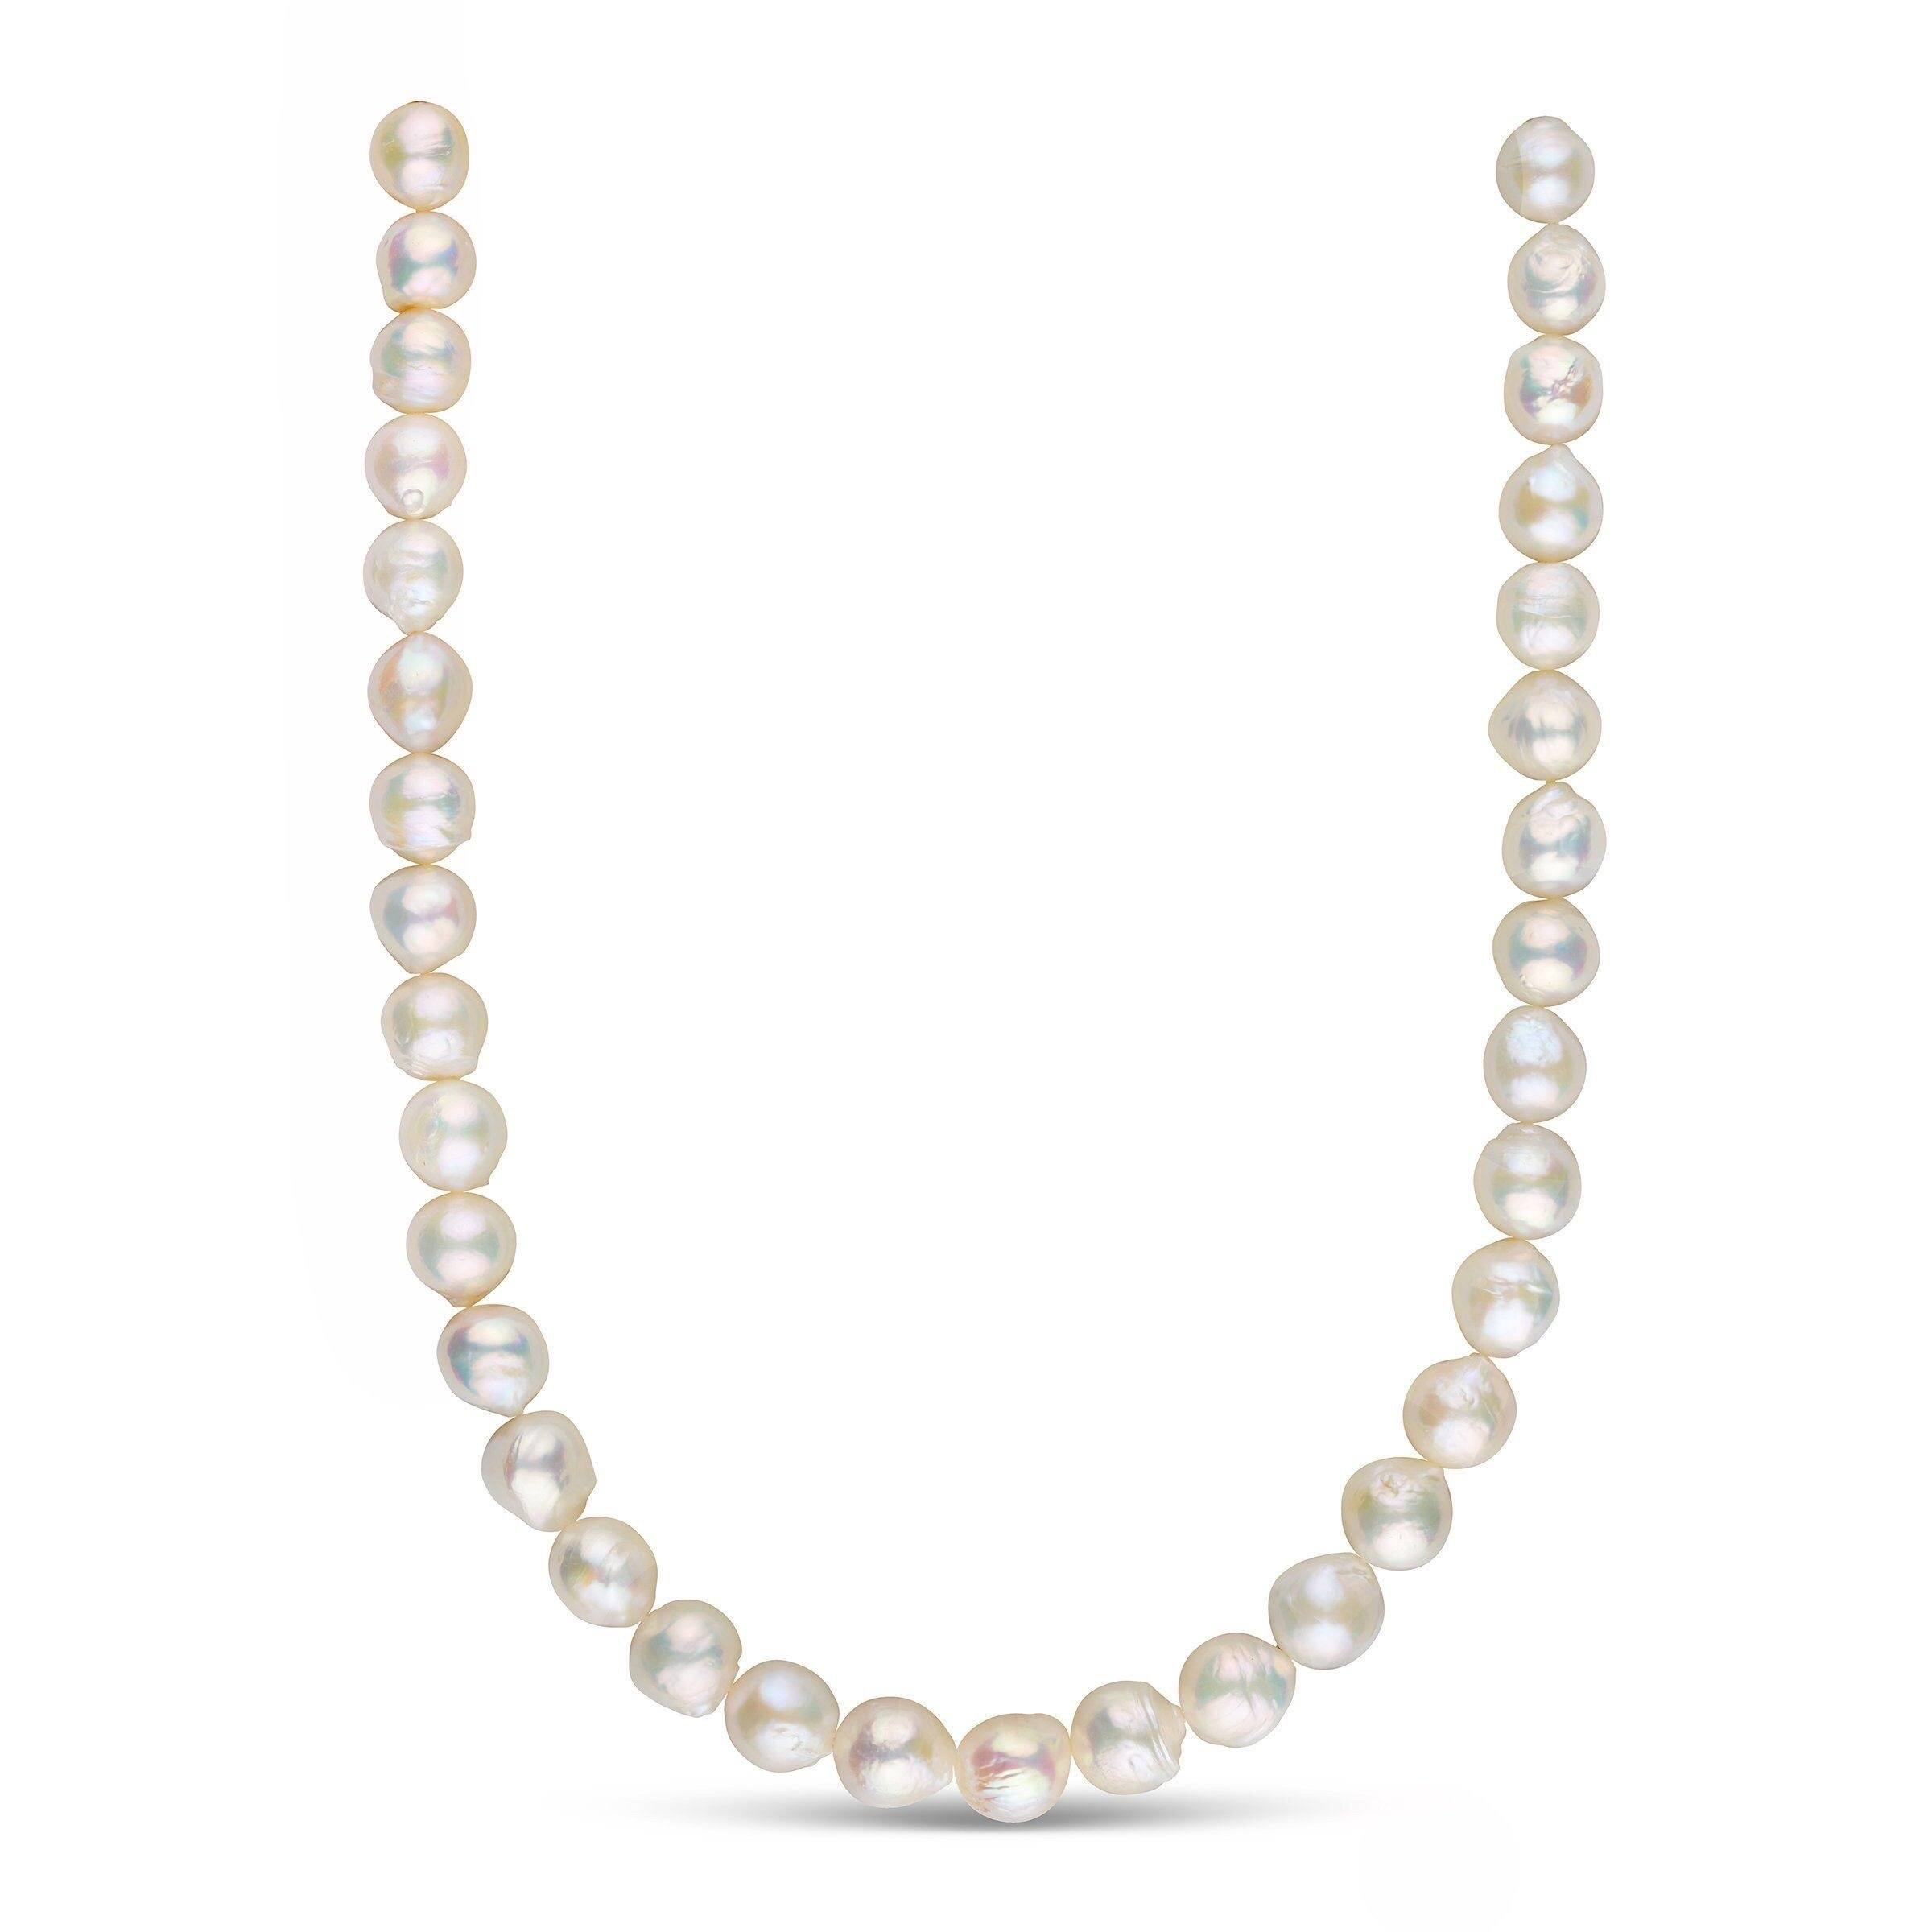 Metallic White Freshwater Ripple Pearl Necklace